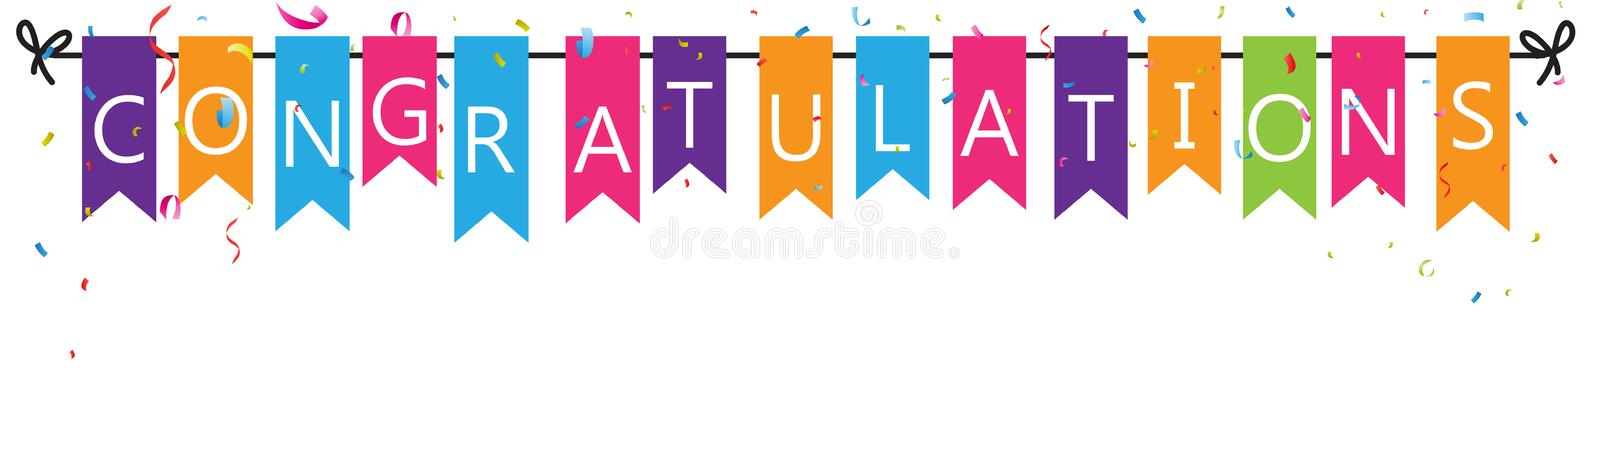 Congratulations with bunting flags. Illustration of Congratulations with bunting flags stock illustration